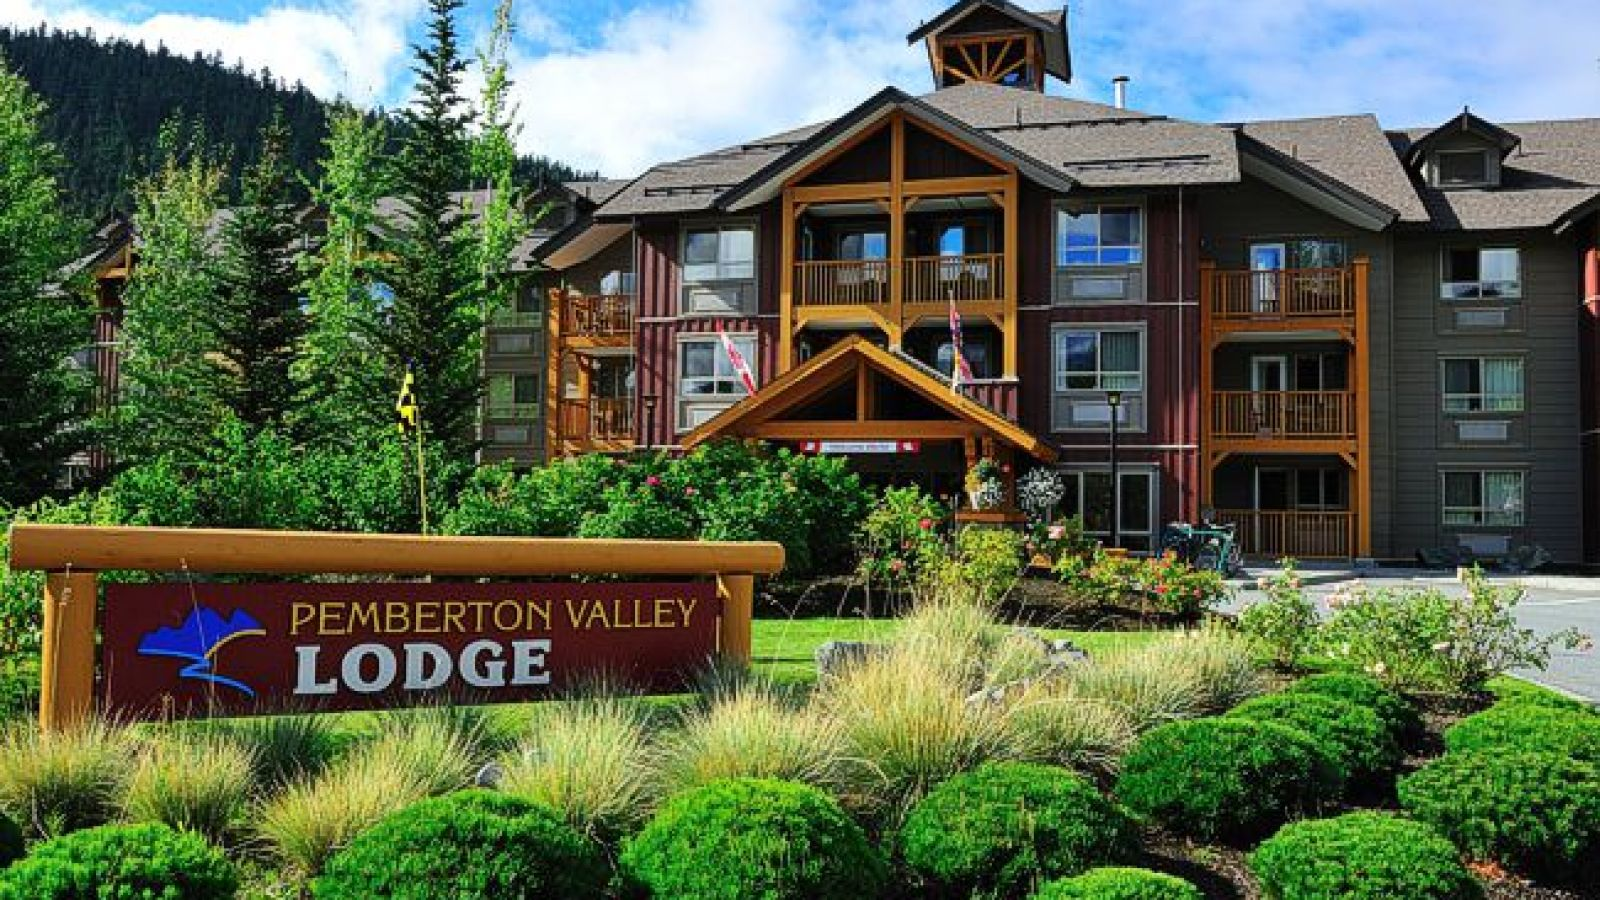 Pemberton Valley Lodge - front view